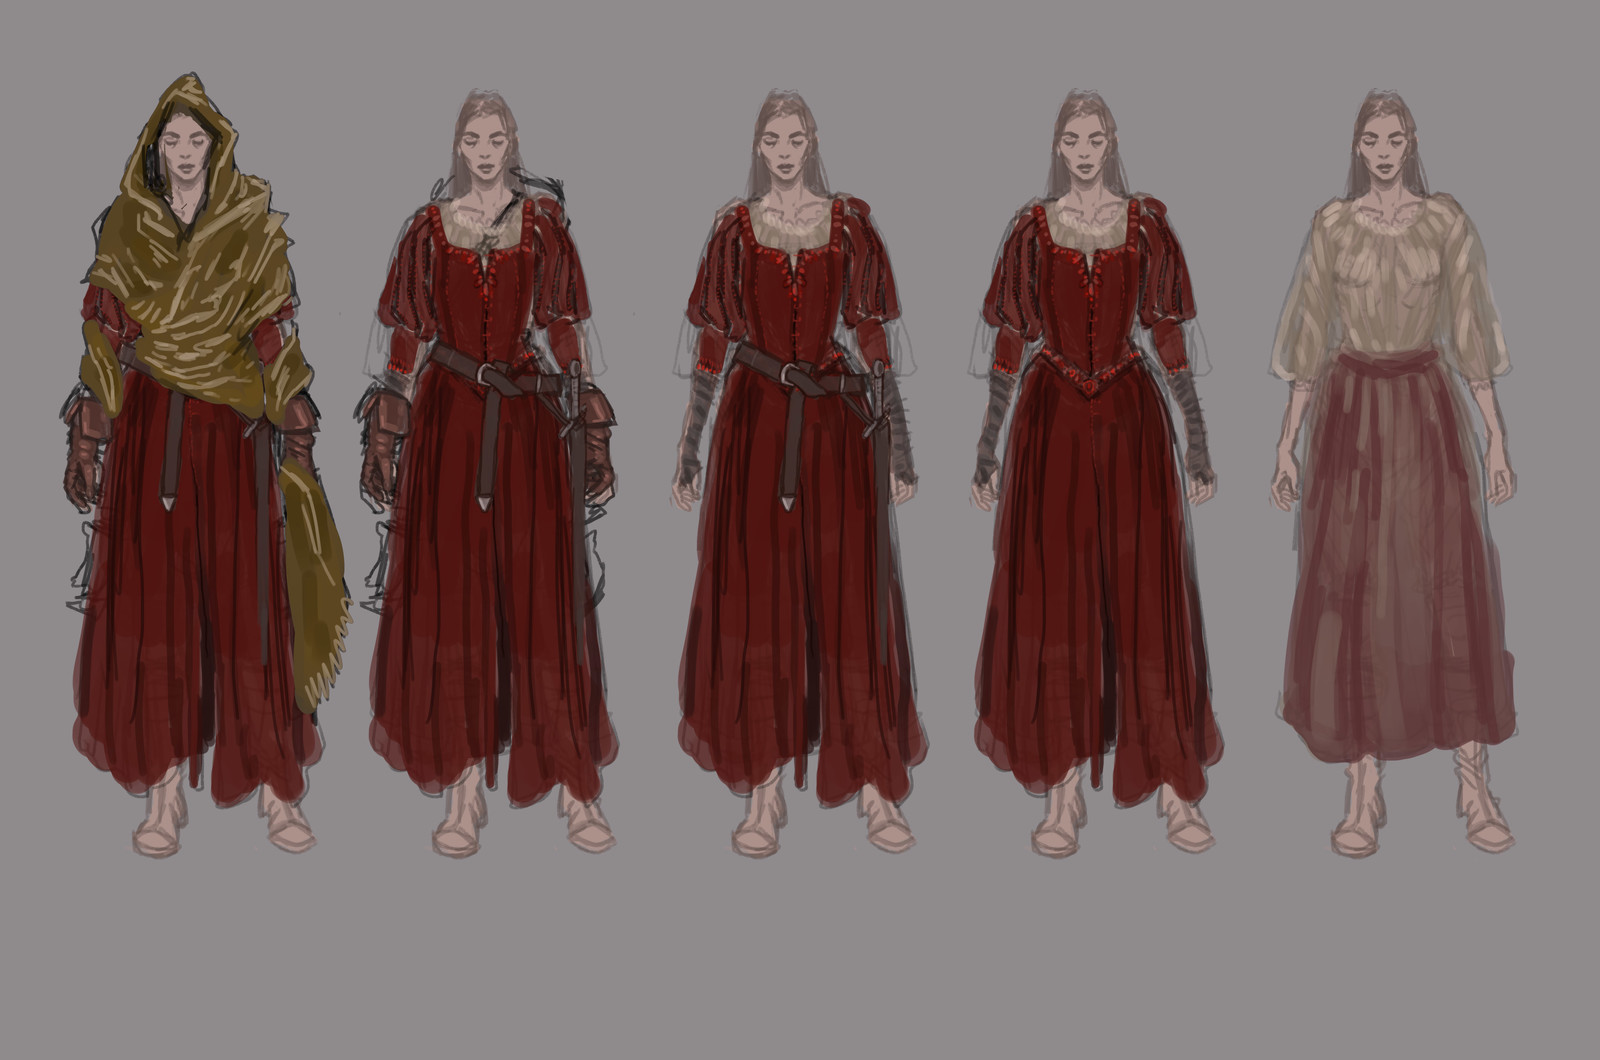 costume design for my character Serah